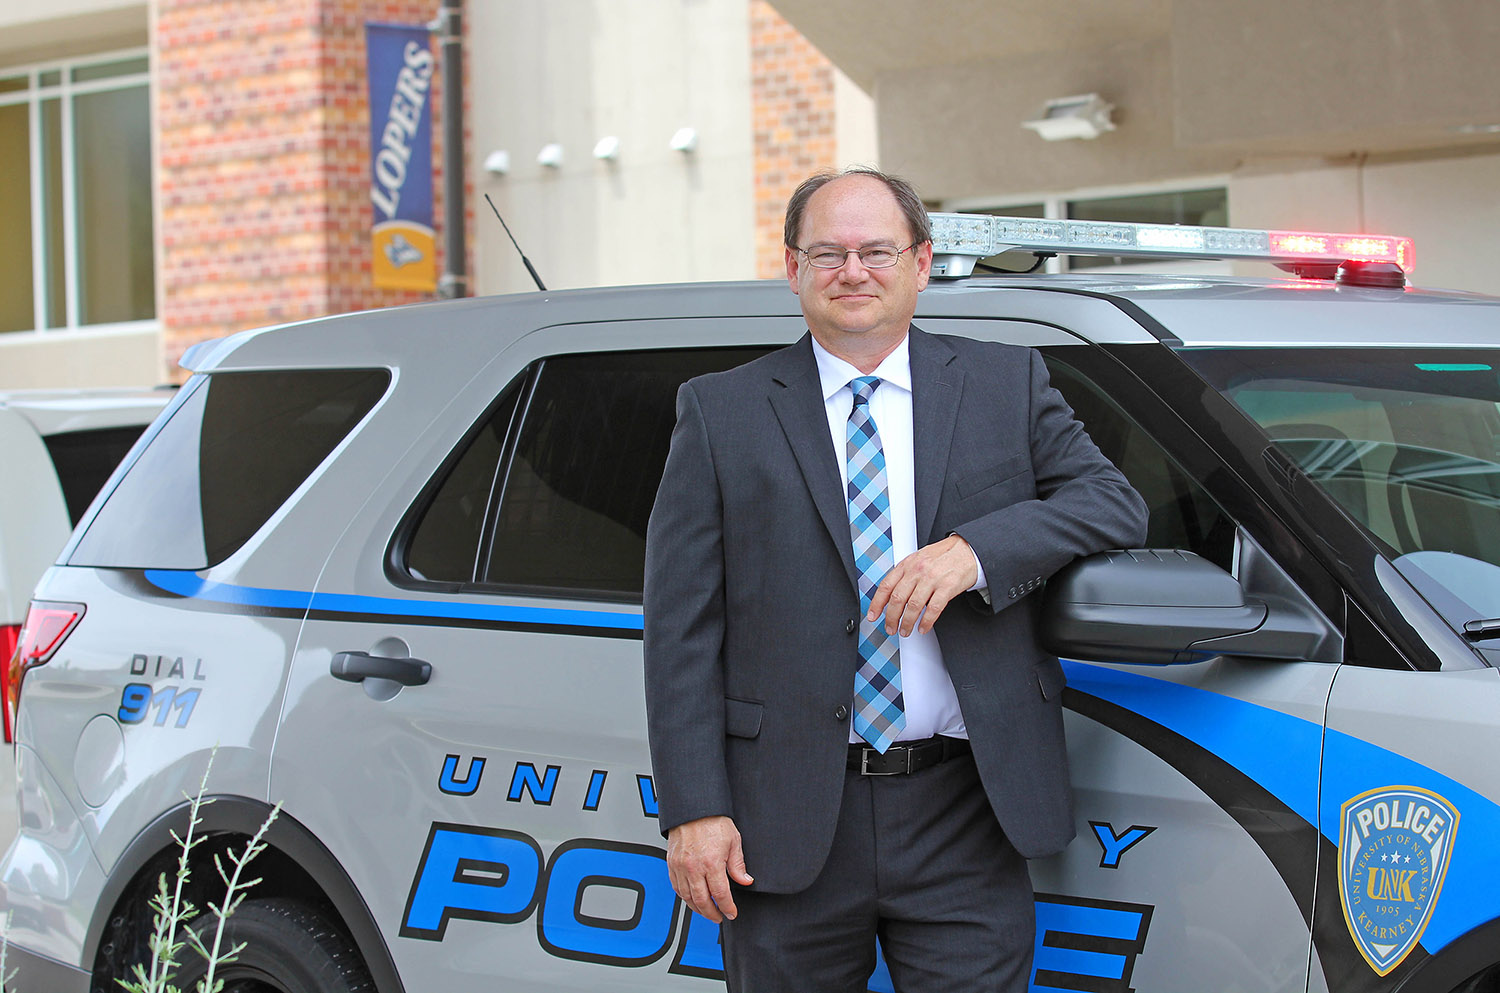 UNK Police Chief Jim Davis has traveled across the state as part of an initiative that provides training for Nebraska law enforcement agencies. Last week, more than a dozen officers from four different agencies attended his anti-bias training session in Knox County.